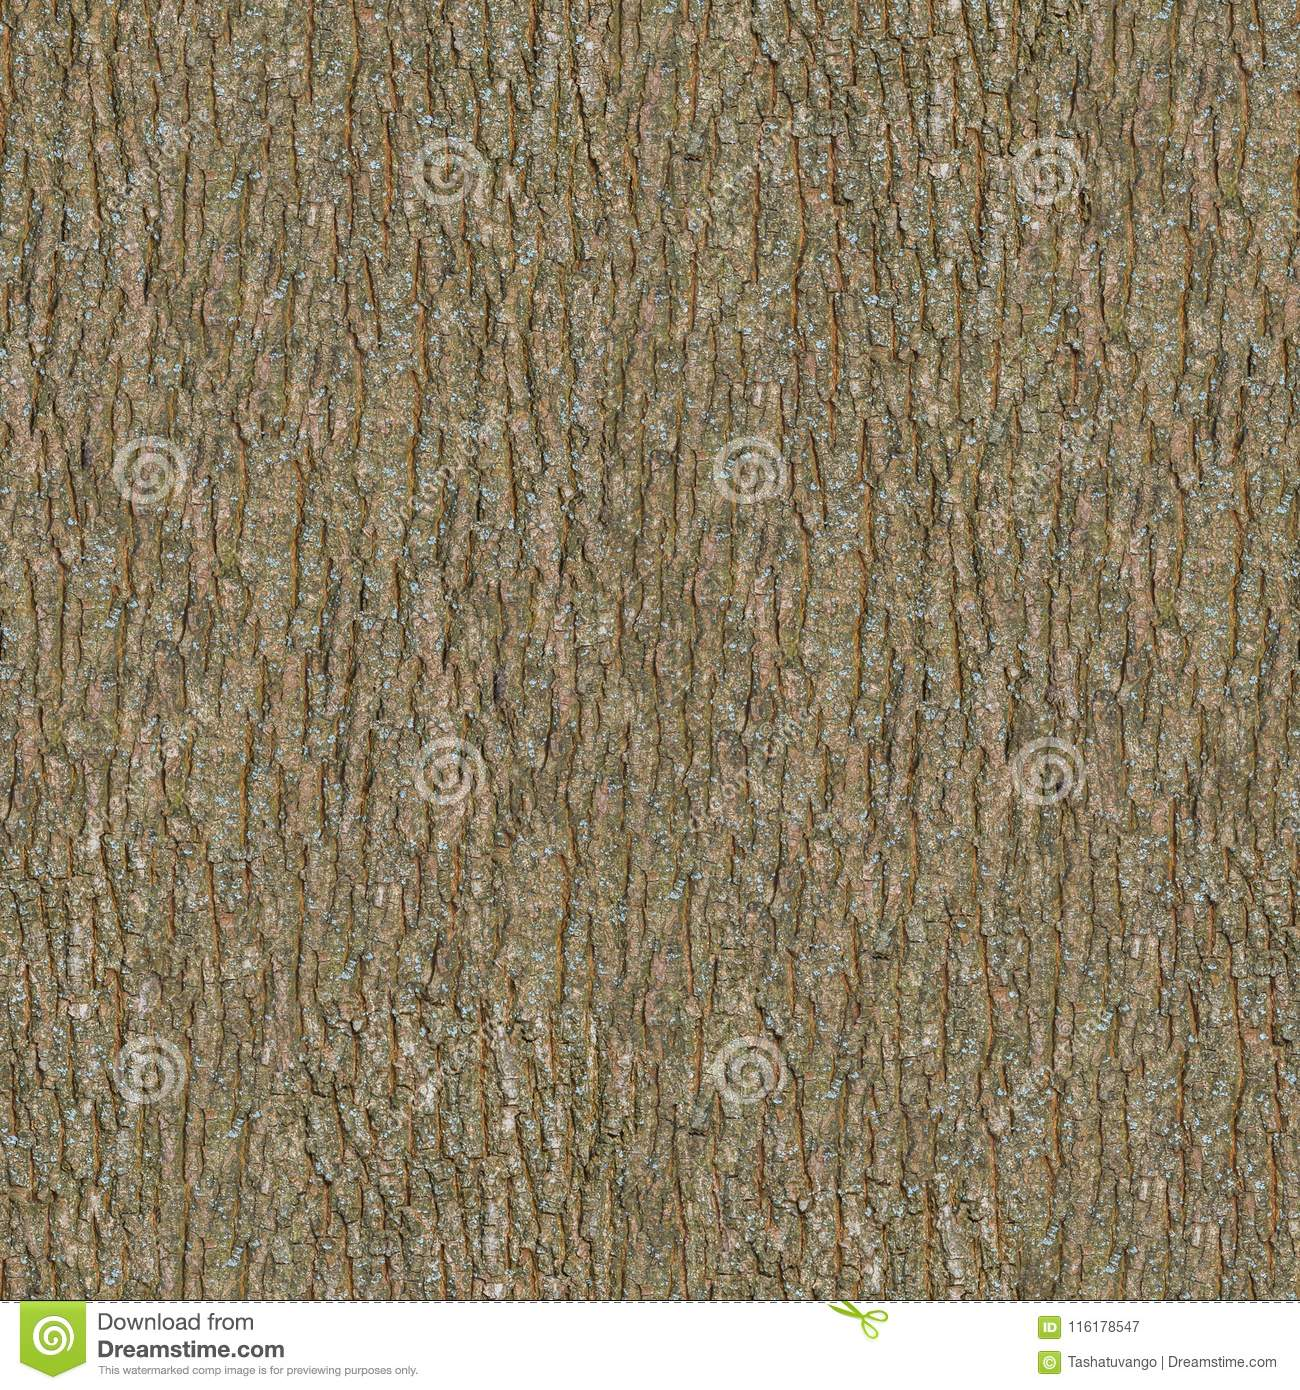 wooden bark seamless tileable texture stock image image of